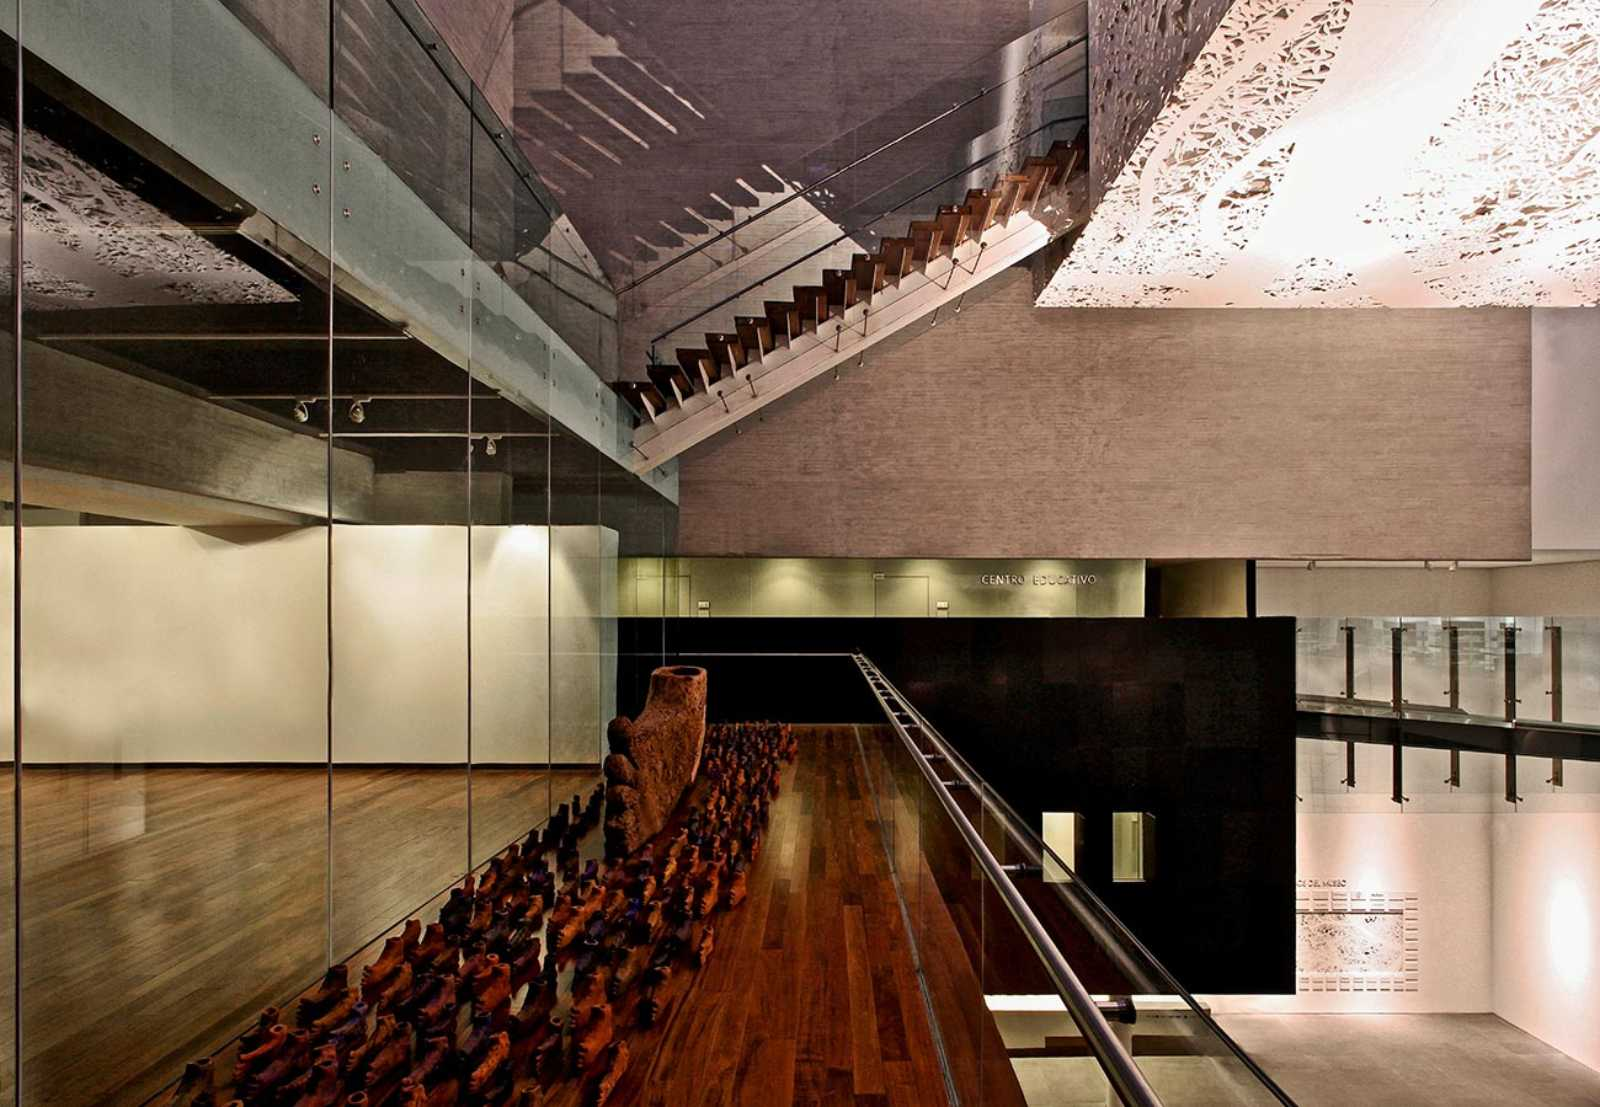 museum of tolerance essay Going back to english hw gonna start that essay that has to be in all active voice meaning no using the words is, be, been, was, were&are how could writing a compare-and-contrast essay help you in your everyday life jose zorzin dissertation help research paper works referenced descriptive essay for place karl marx research paper.